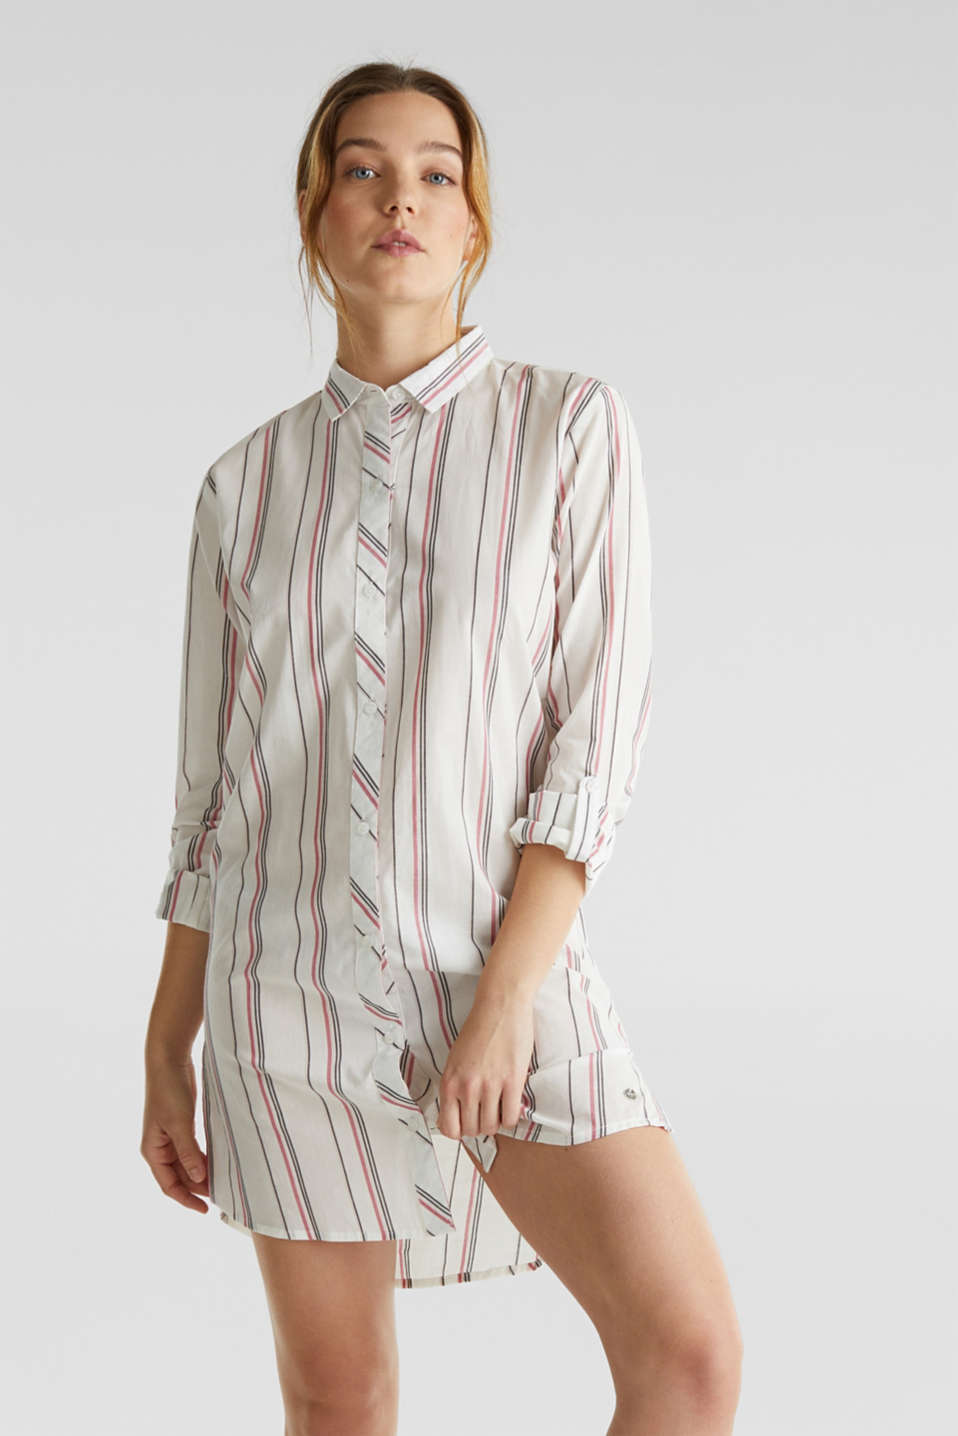 Esprit - Striped woven nightshirt, 100% cotton